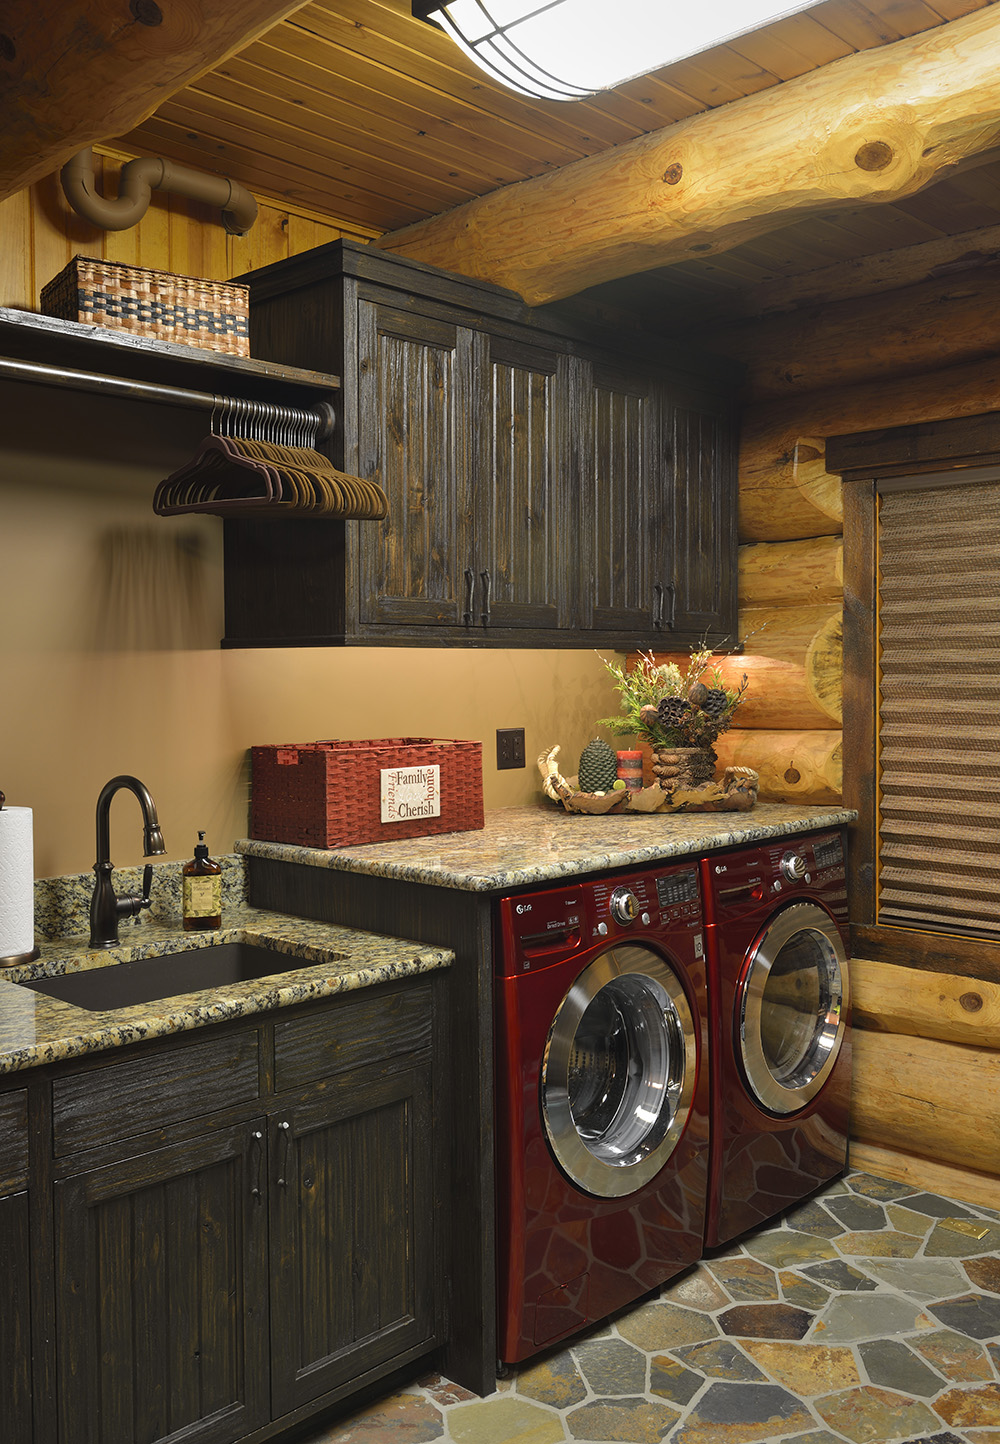 50 Best Laundry Room Design Ideas for 2016 on Laundry Room Decor Ideas  id=83515